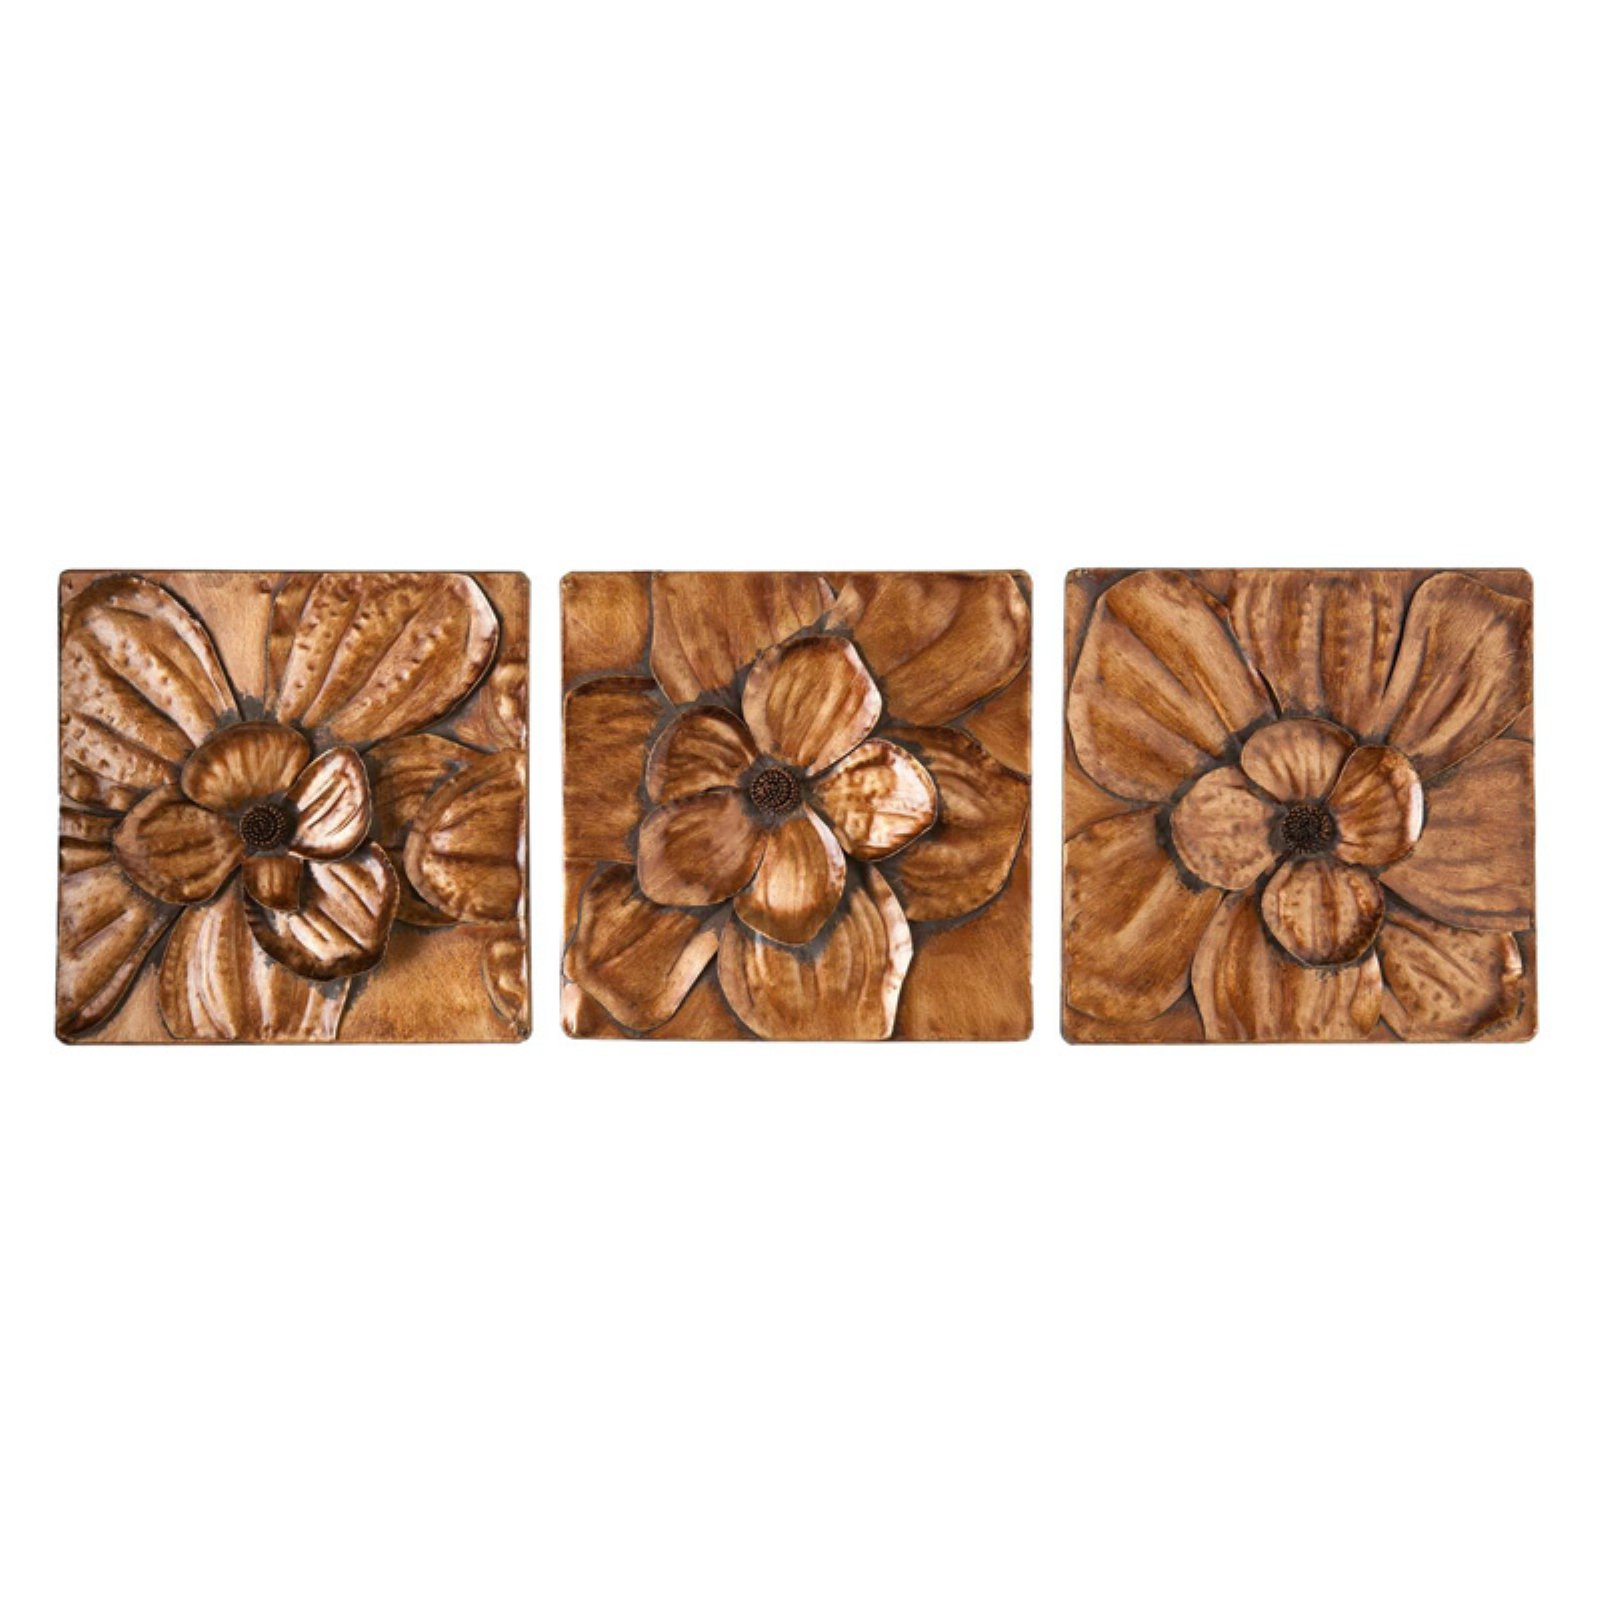 Southern Enterprises Magnolia 3-Piece Wall Panel Set intended for 3 Piece Magnolia Brown Panel Wall Decor Sets (Image 25 of 30)